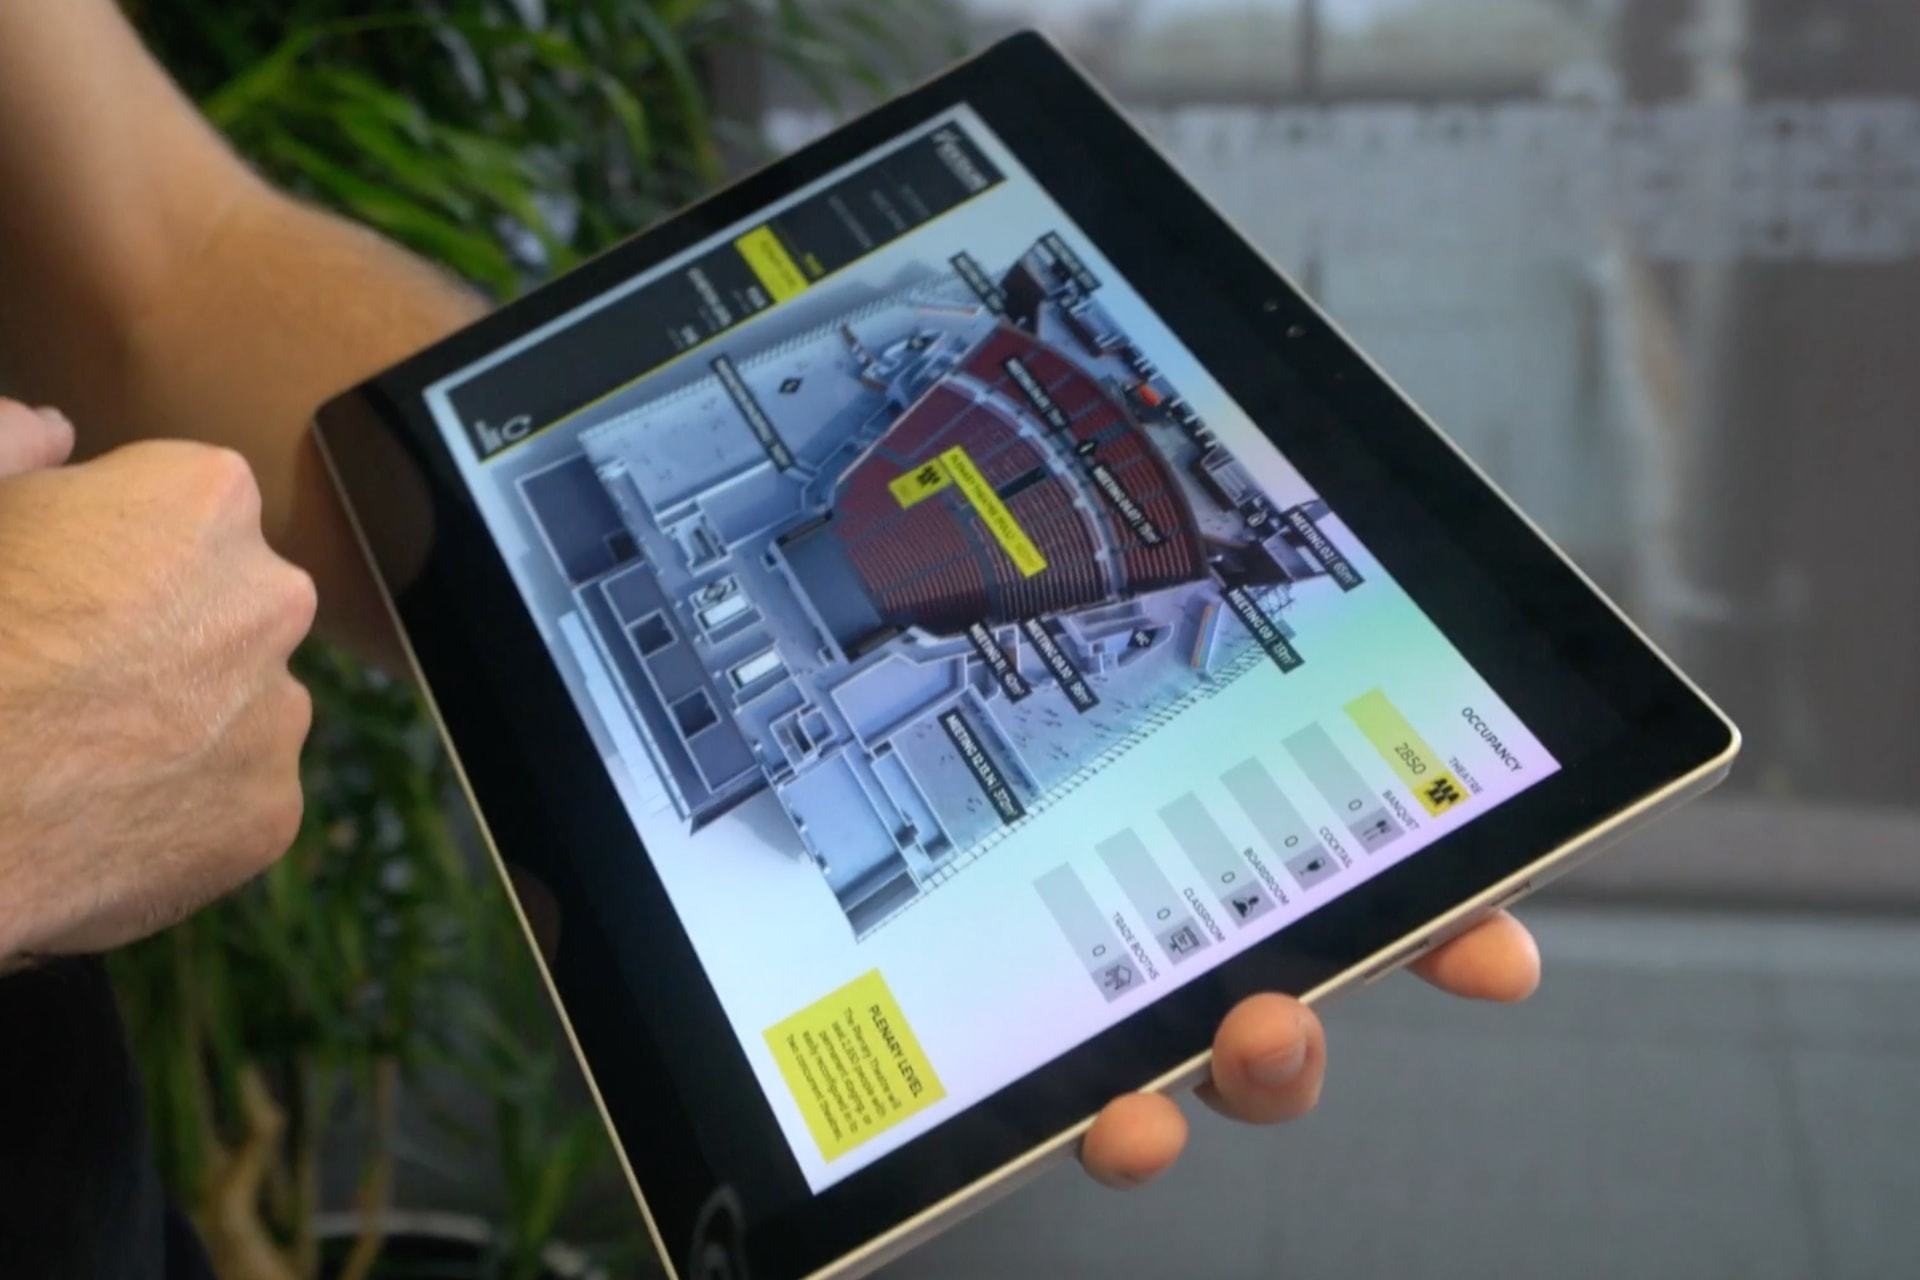 NZICC interactive floor plan displayed on tablet